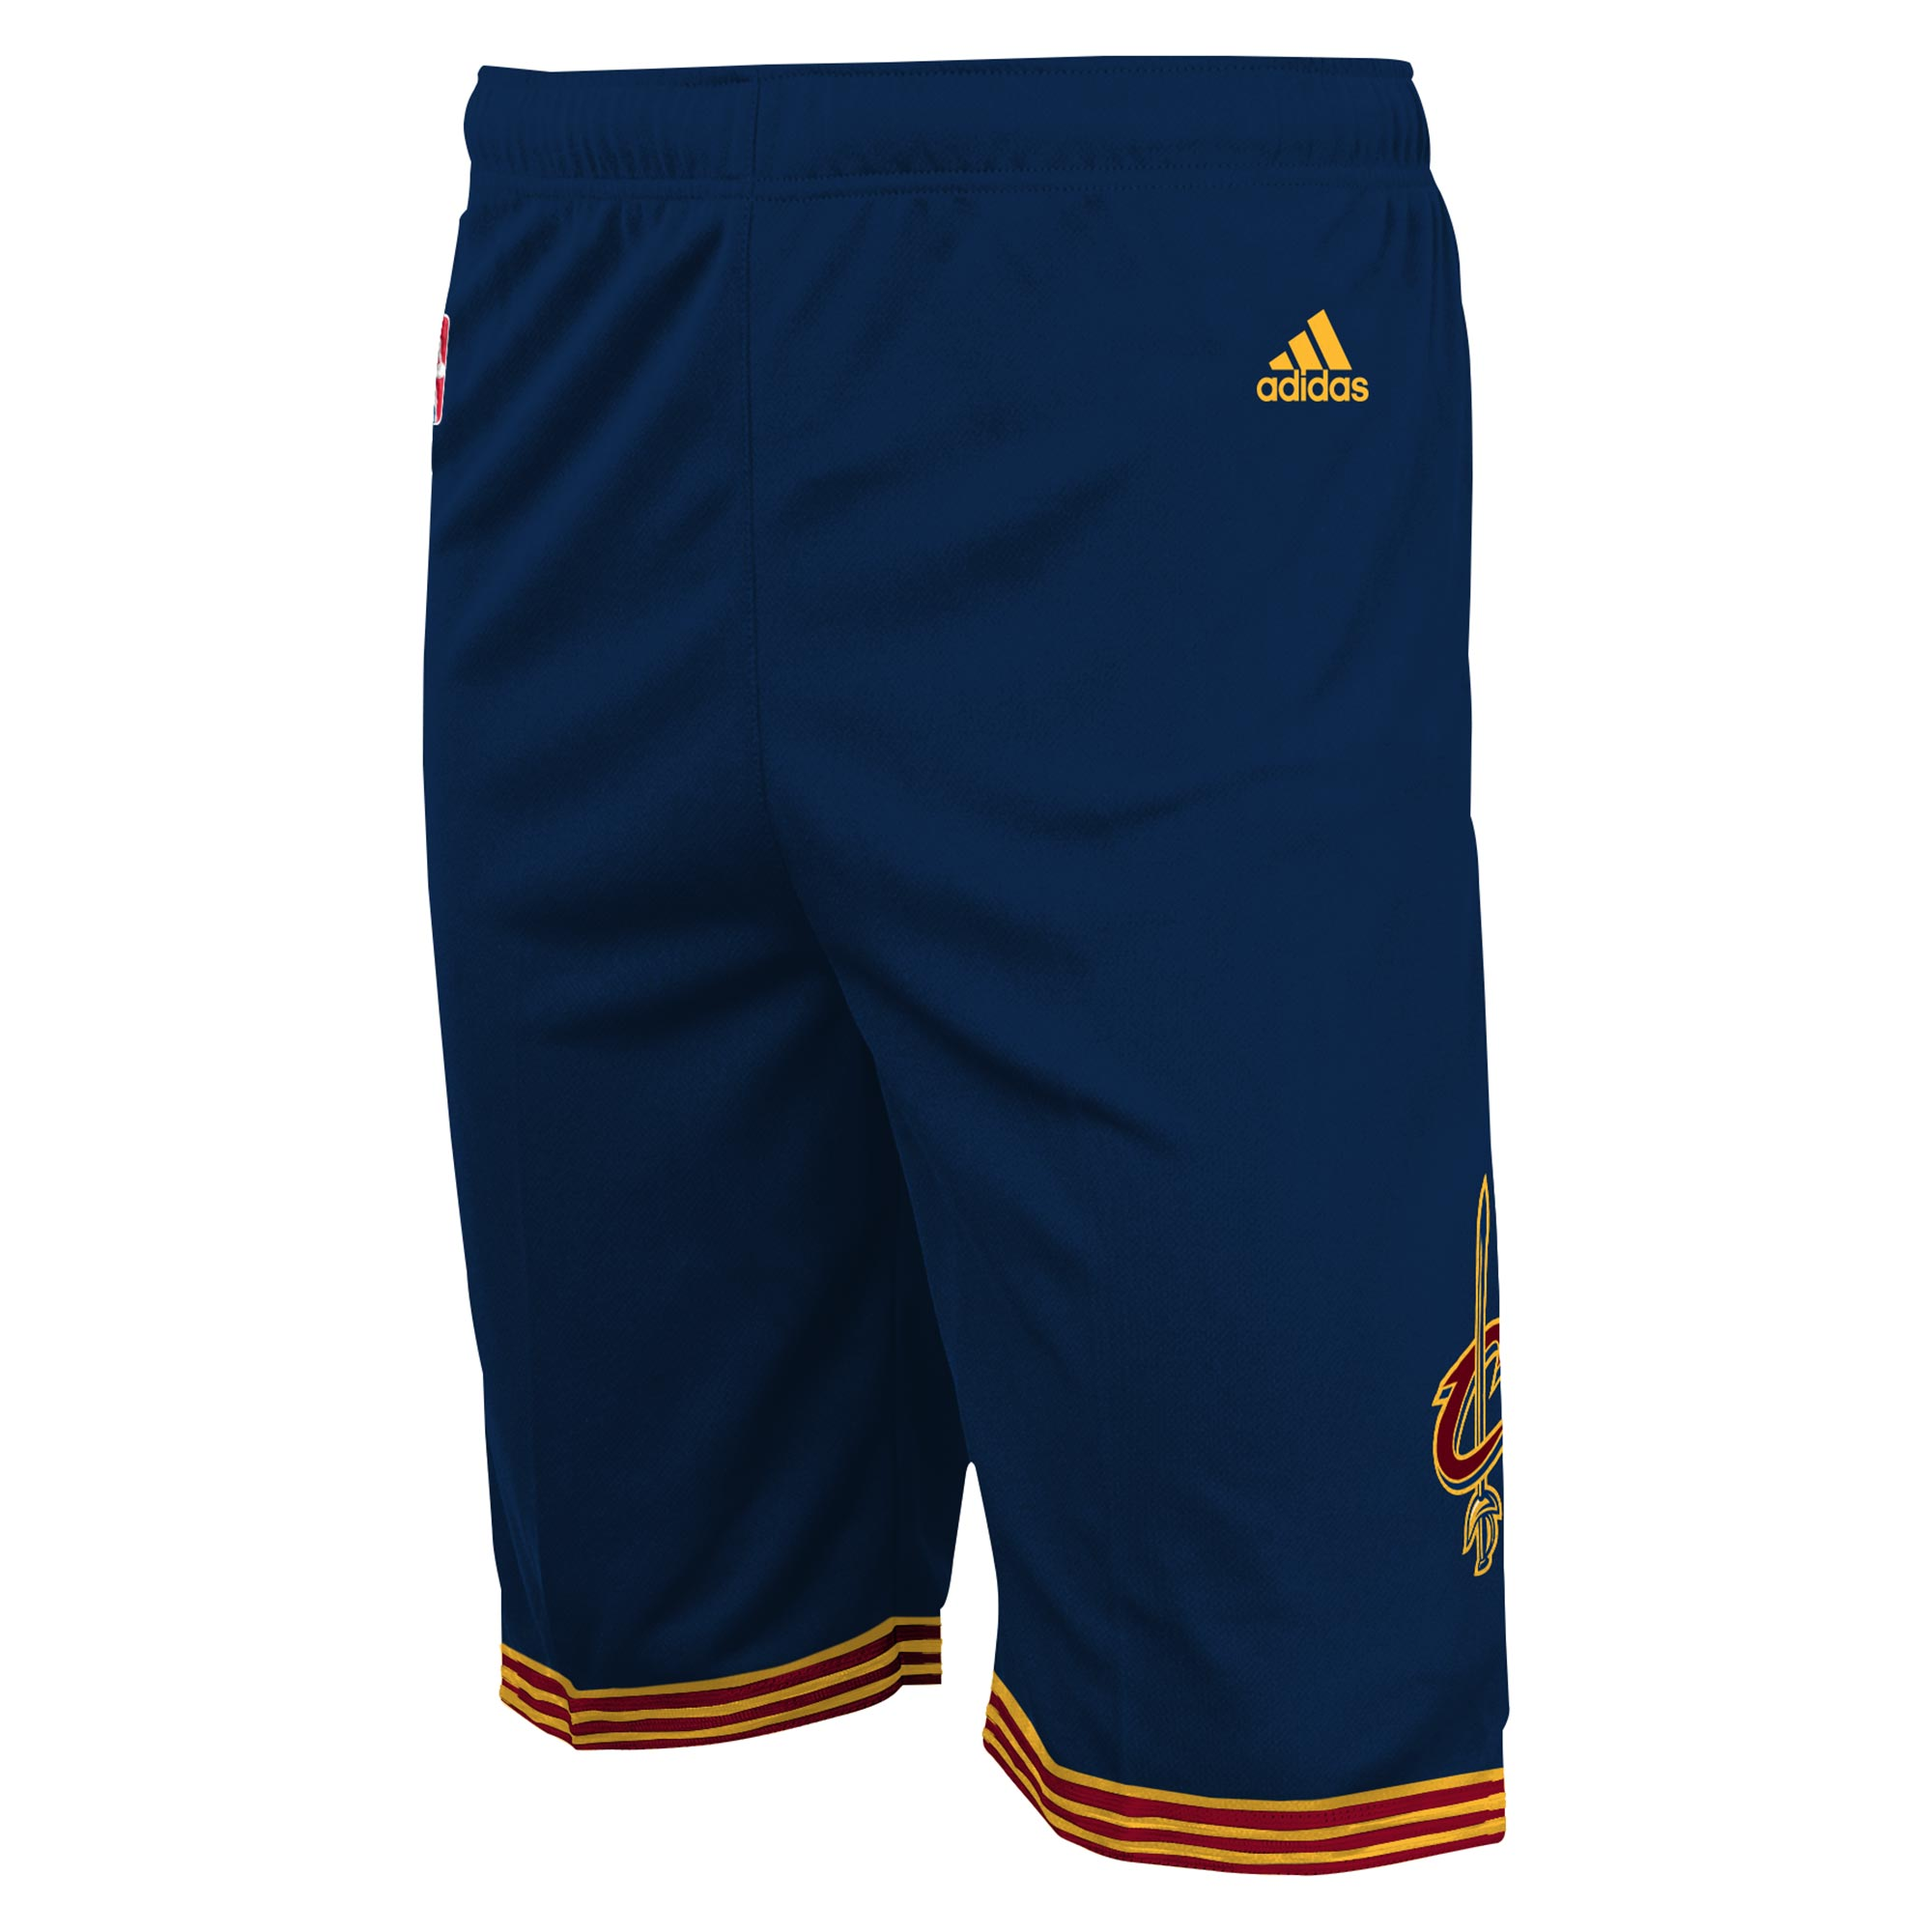 Cleveland Cavaliers Road Alternate Replica Shorts - Youth